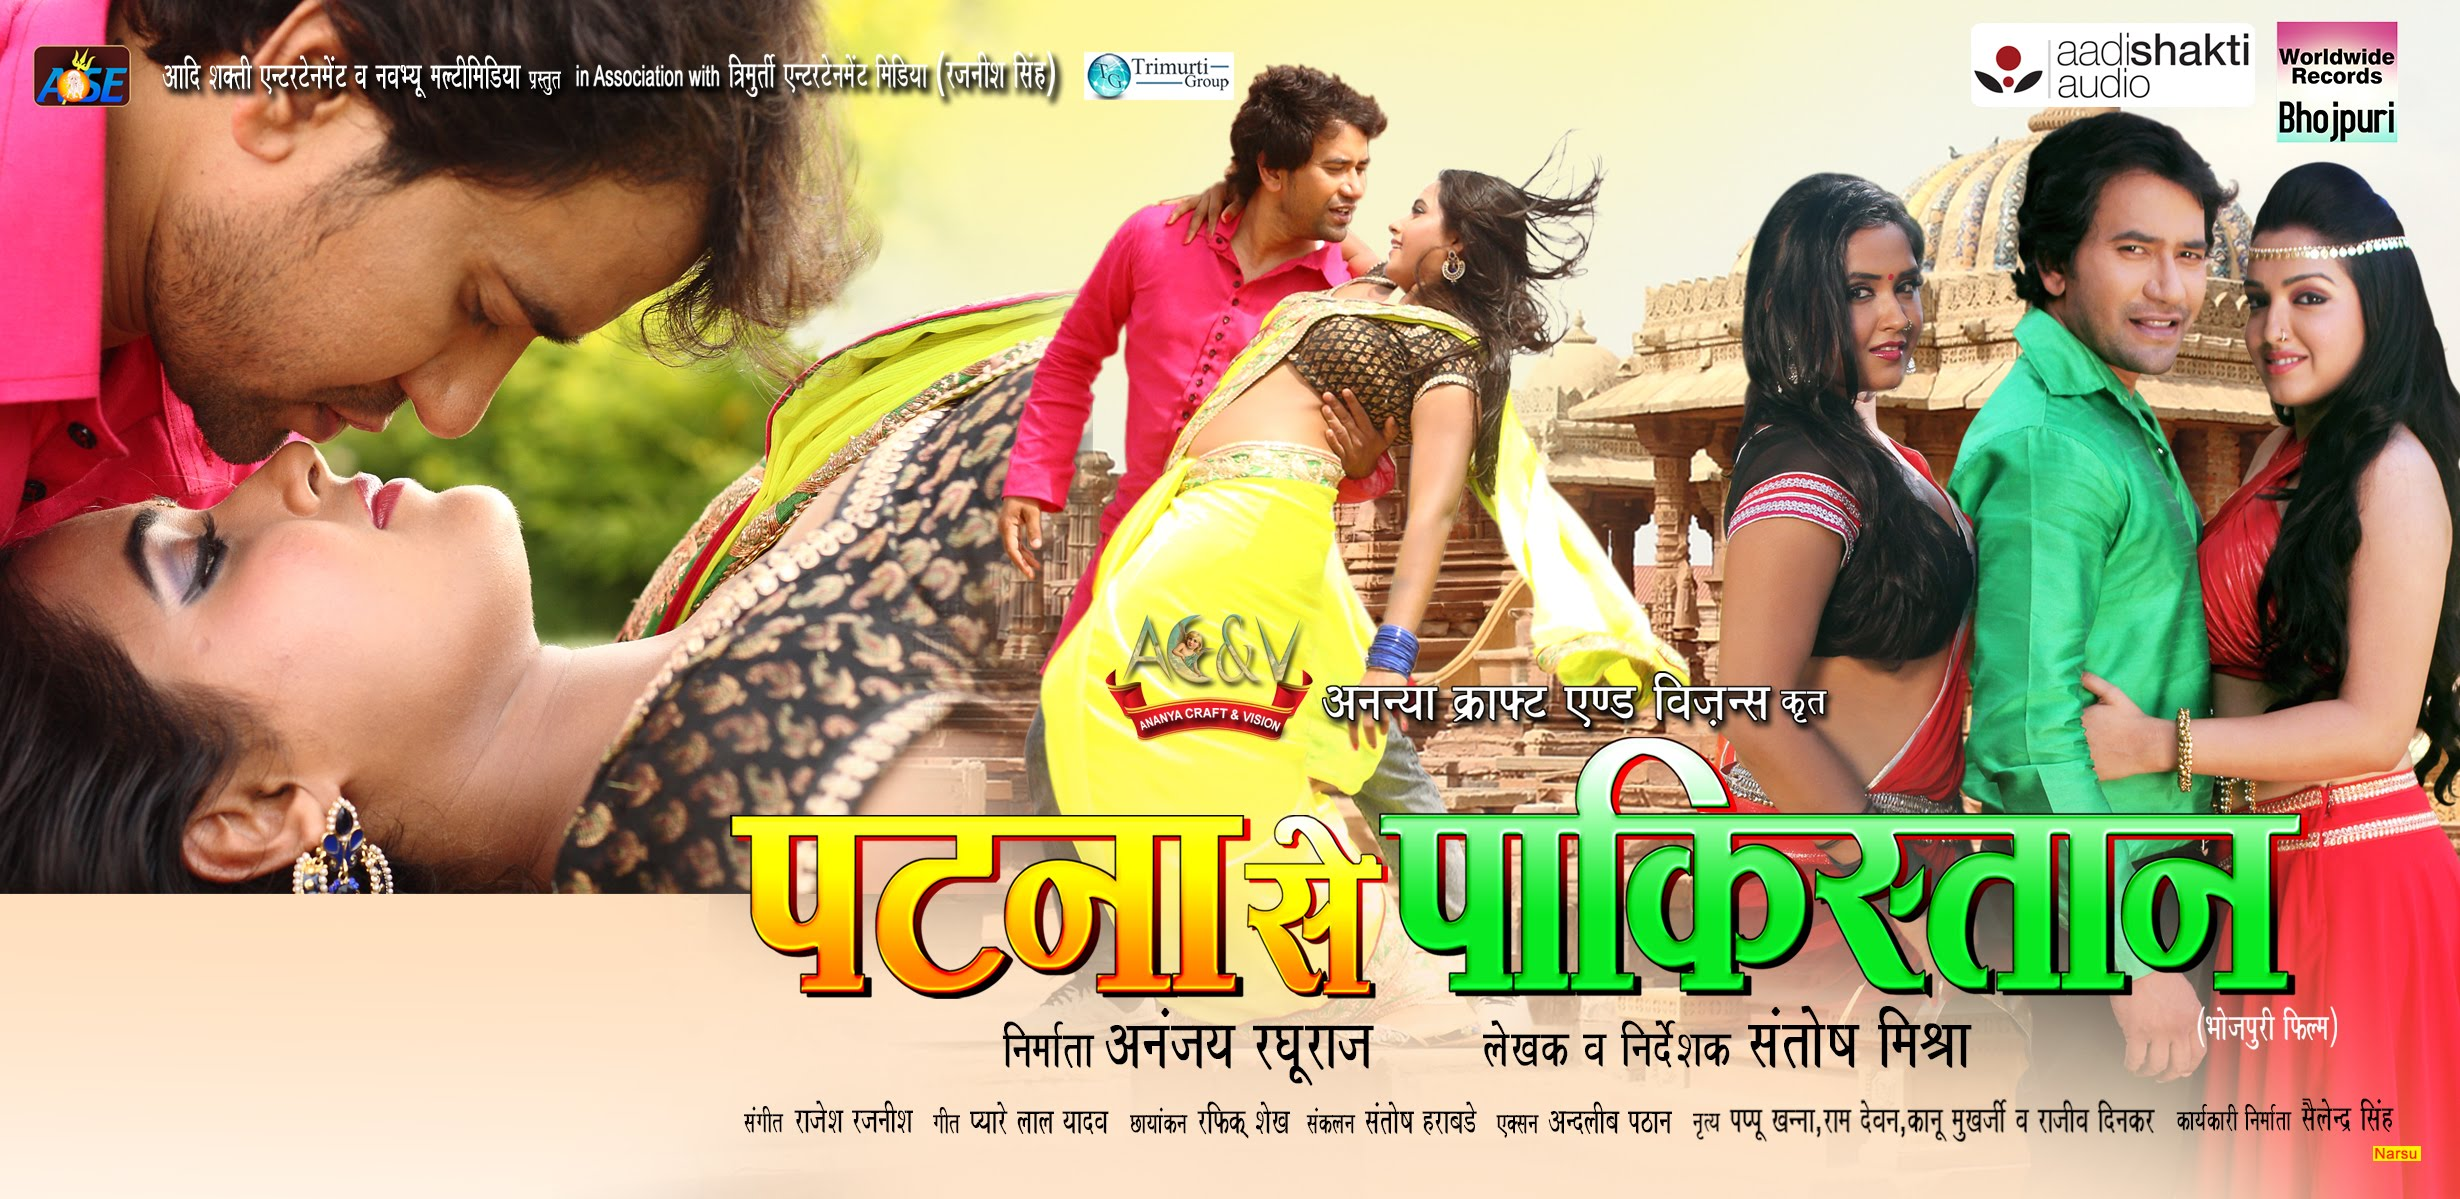 Beta full movies bhojpuri | Beta Hokhe Ta Aisan Bhojpuri Movie (2017